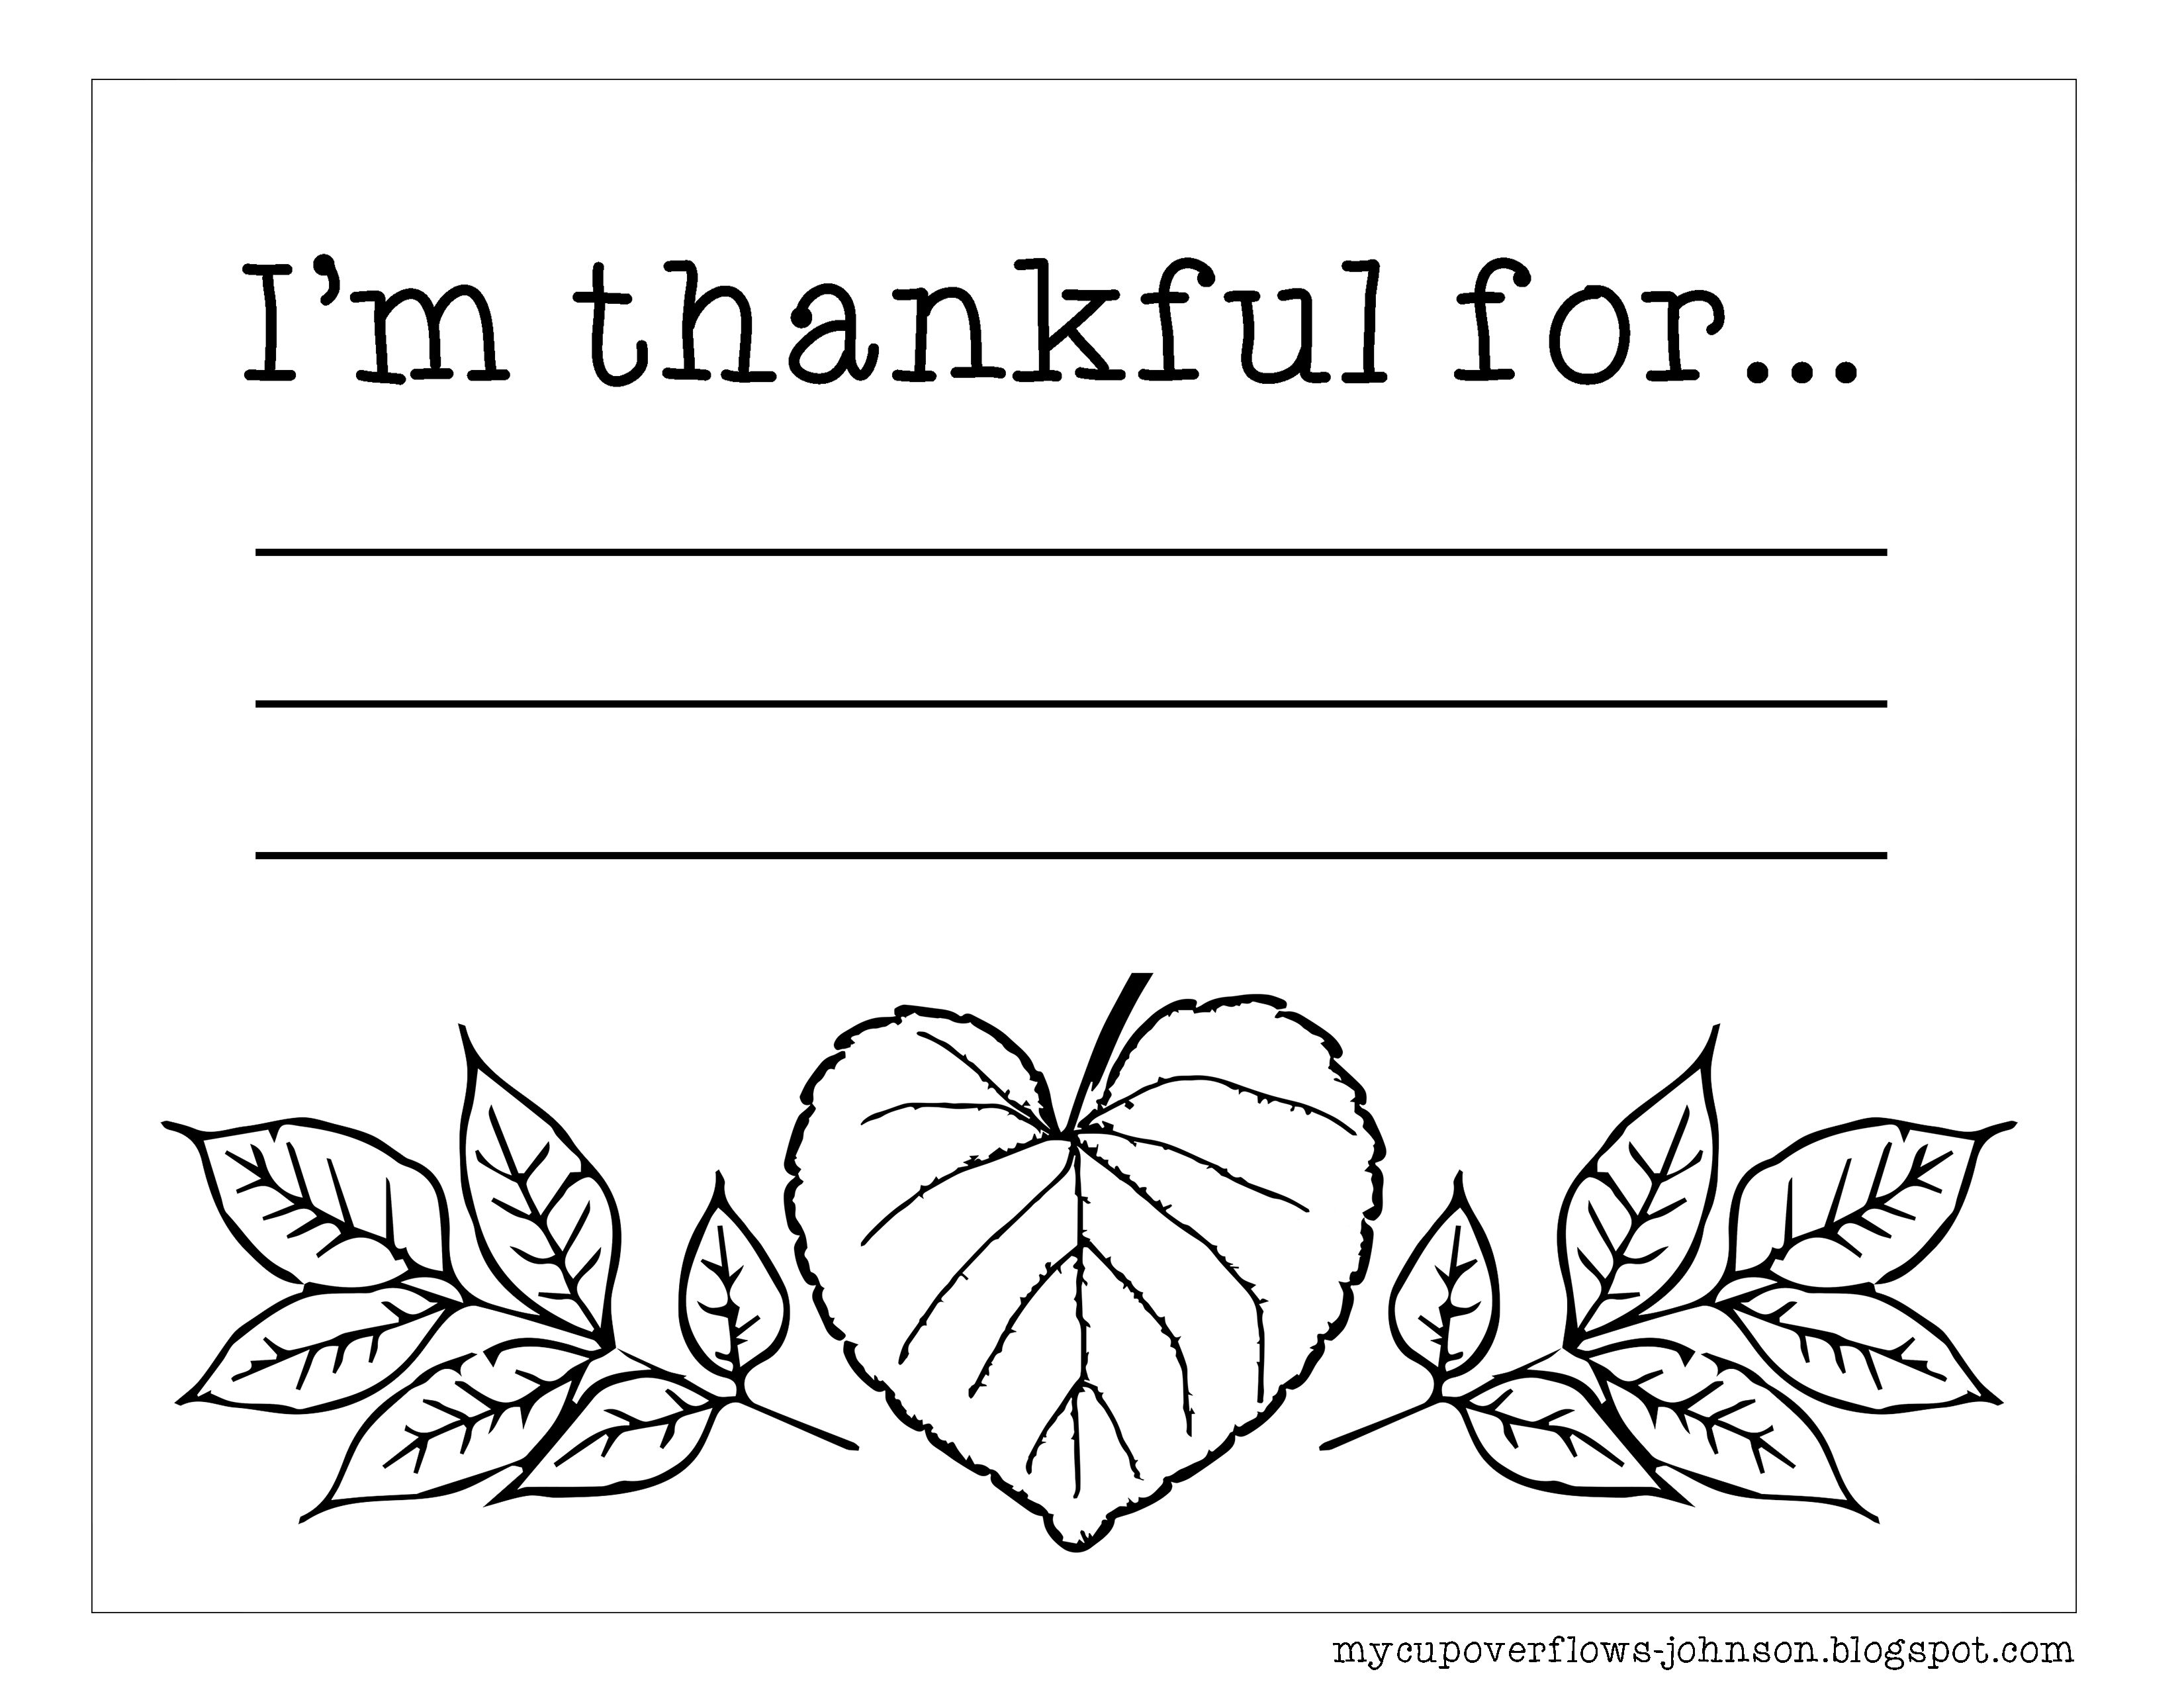 Fall Coloring Pages | Thanksgiving coloring pages, Fall ...